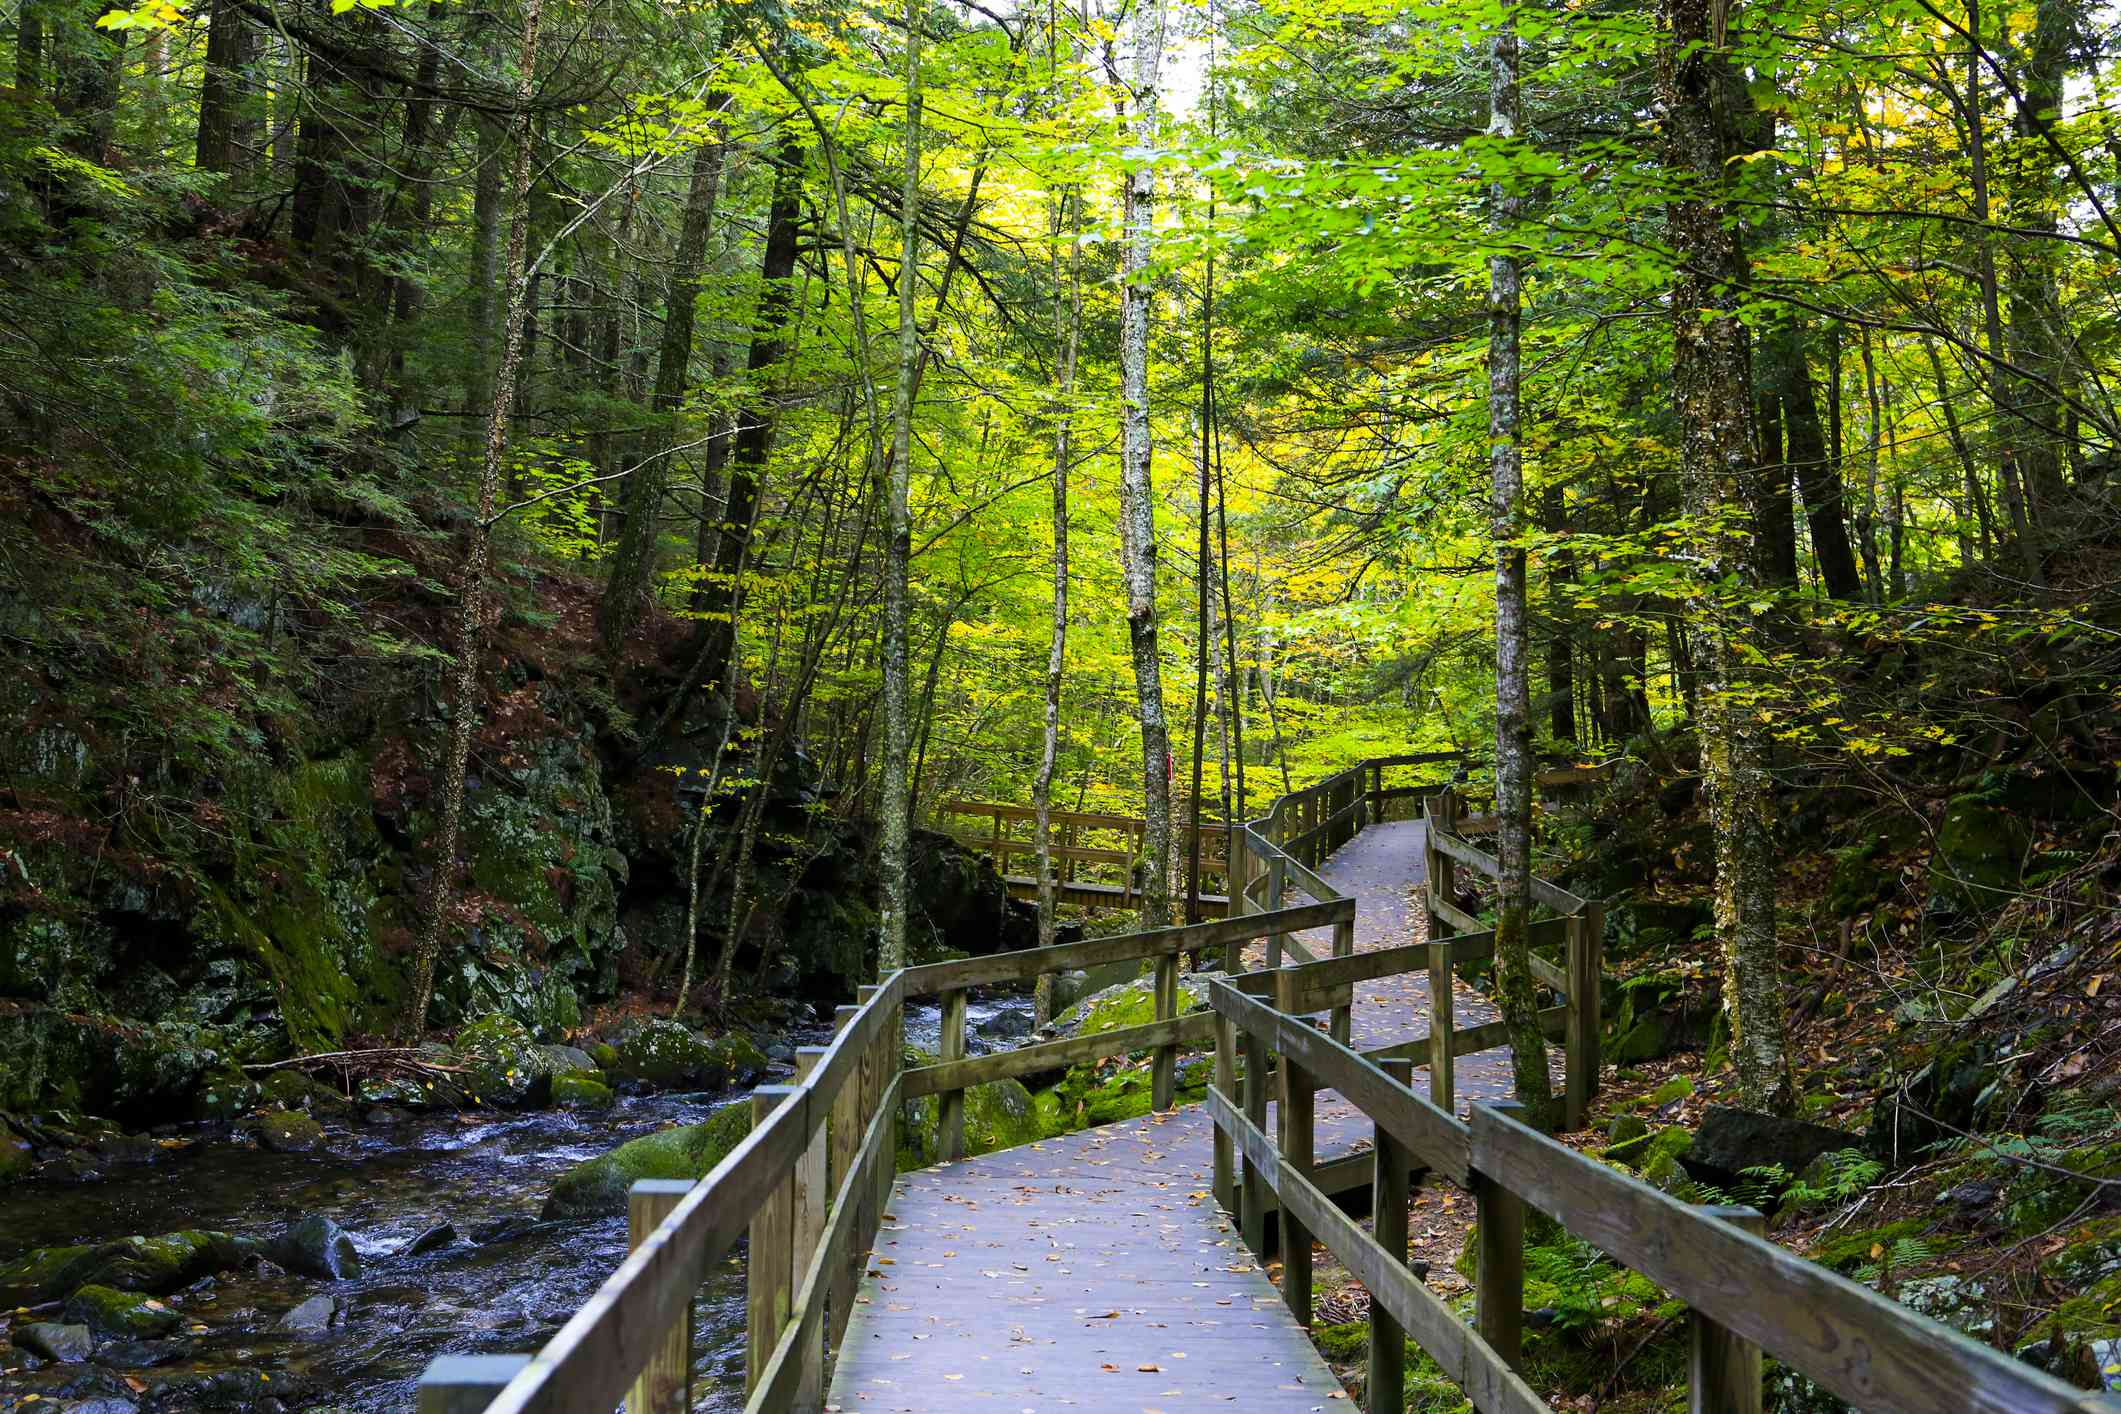 wooden path over a stream in a forest